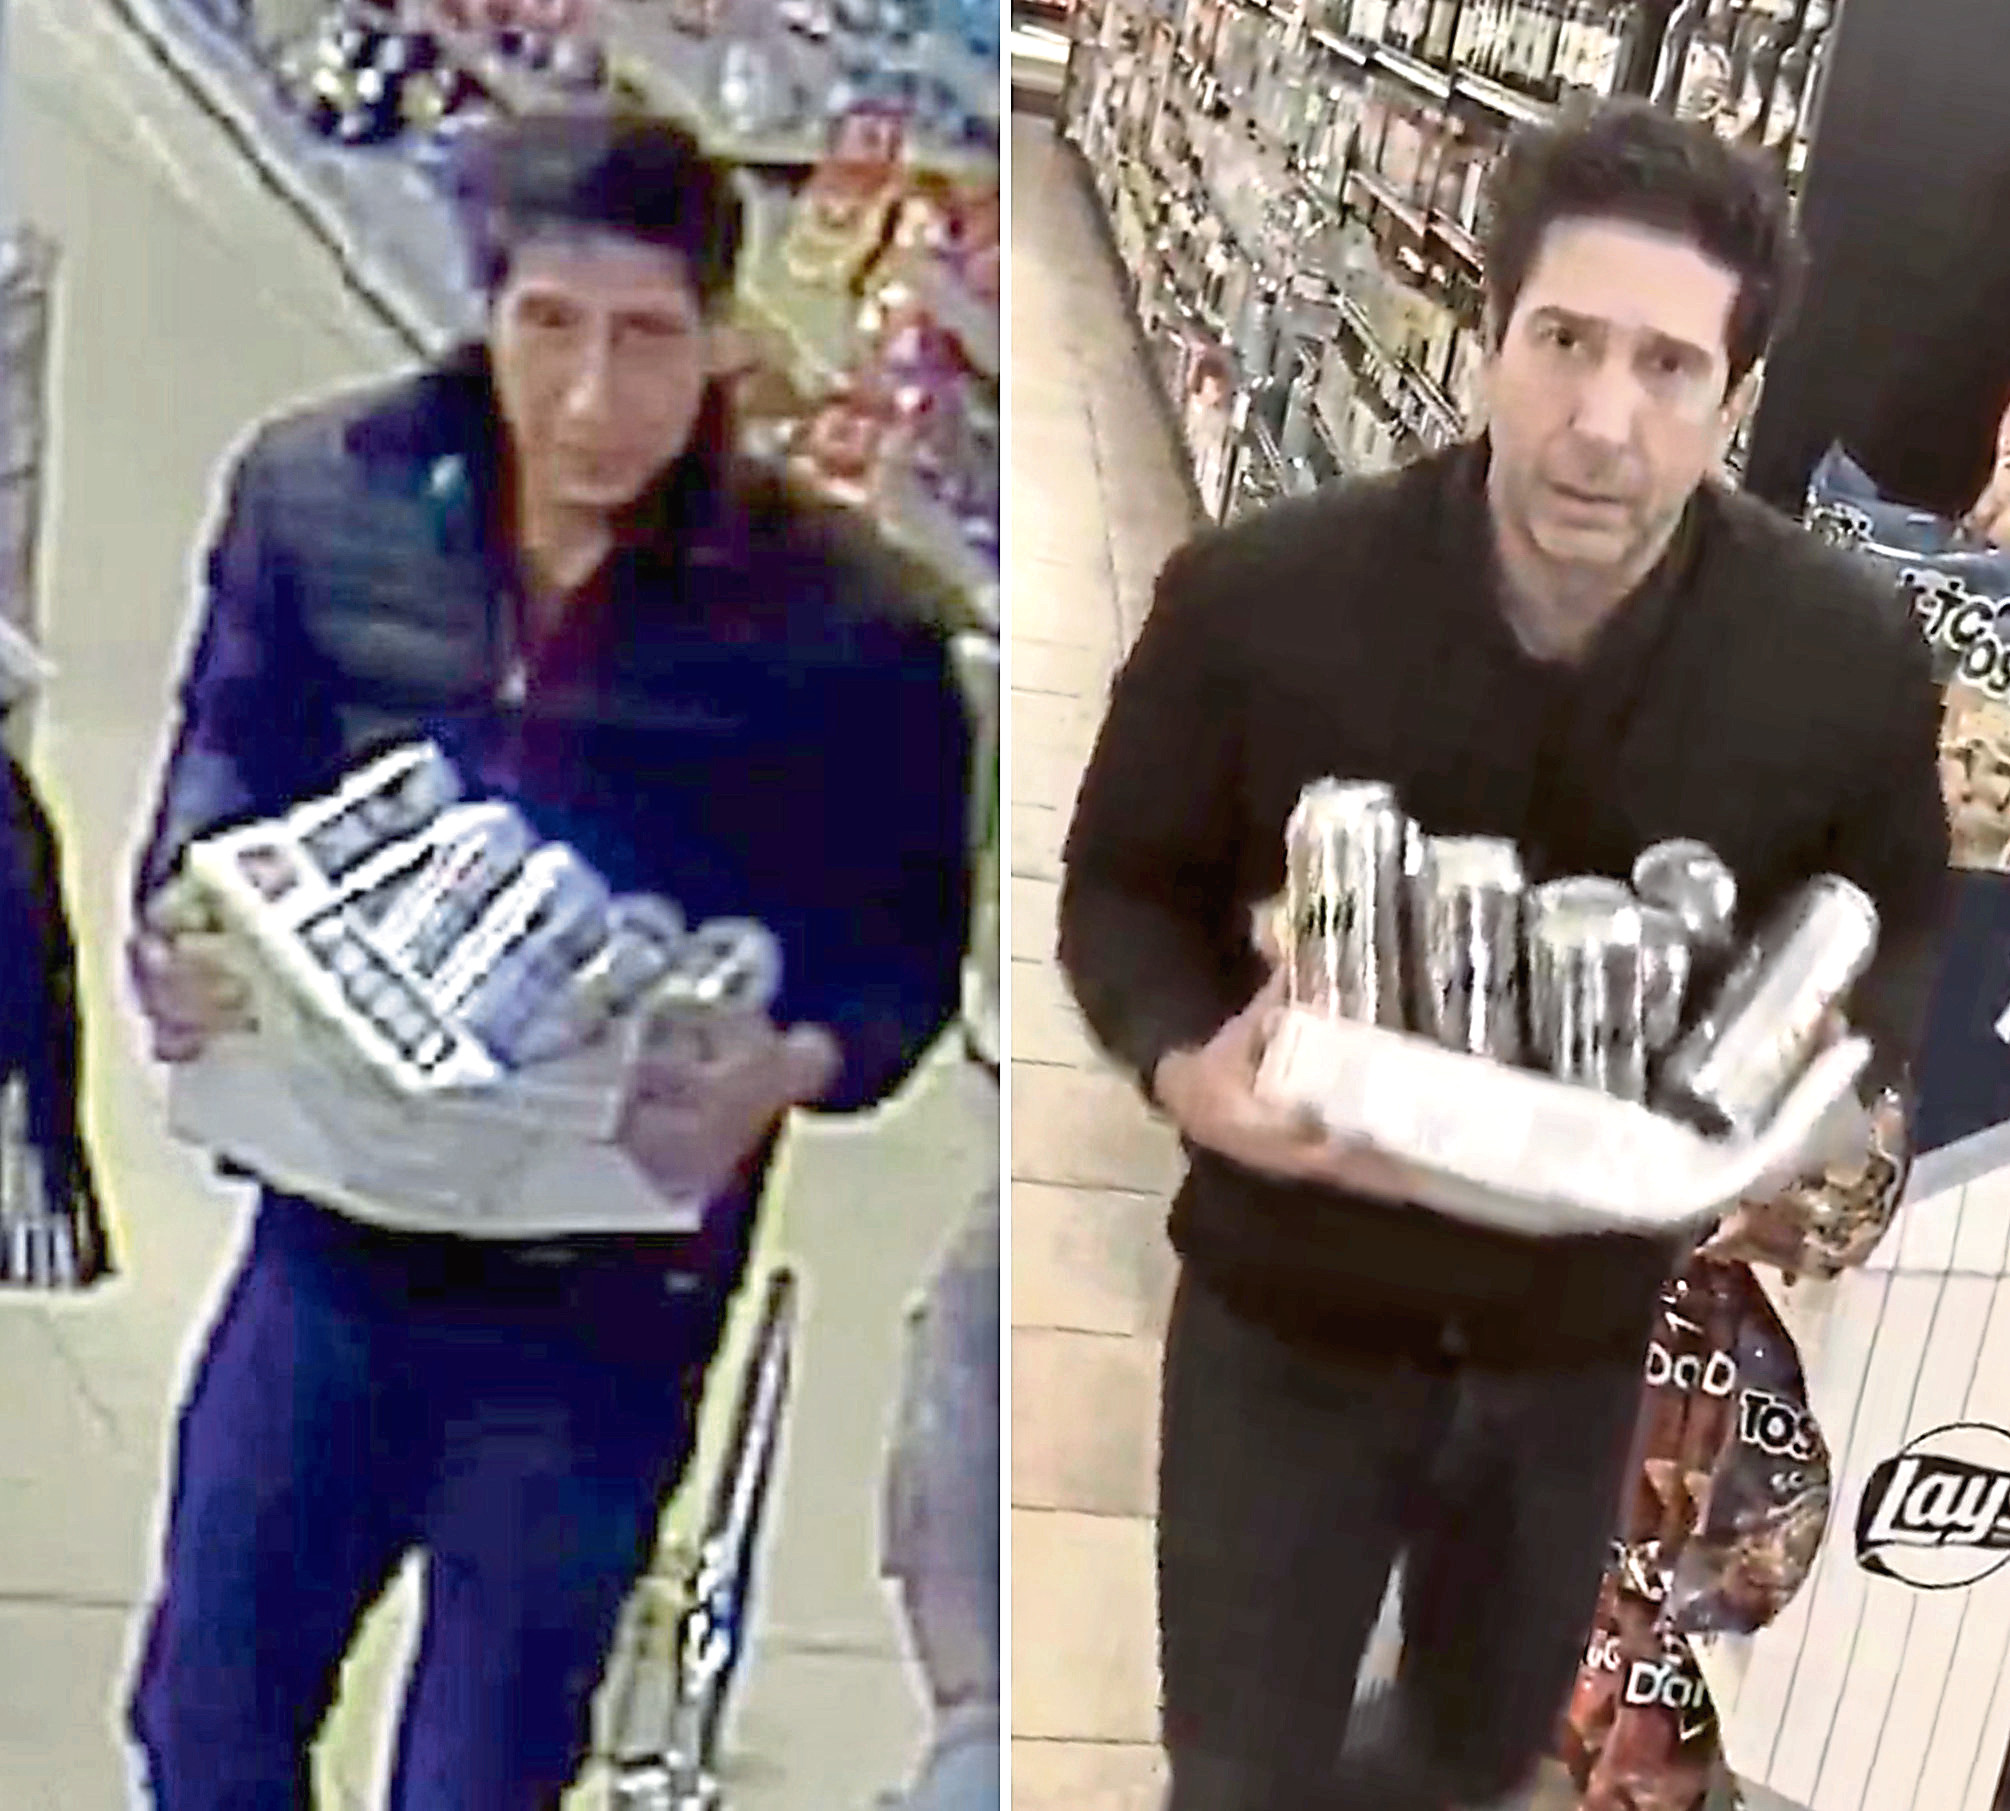 Friends actor David Schwimmer posted a picture of himself with a case of beer in New York after CCTV footage of an alleged beer thief in Blackpool, resembling the actor, left, was posted by police.